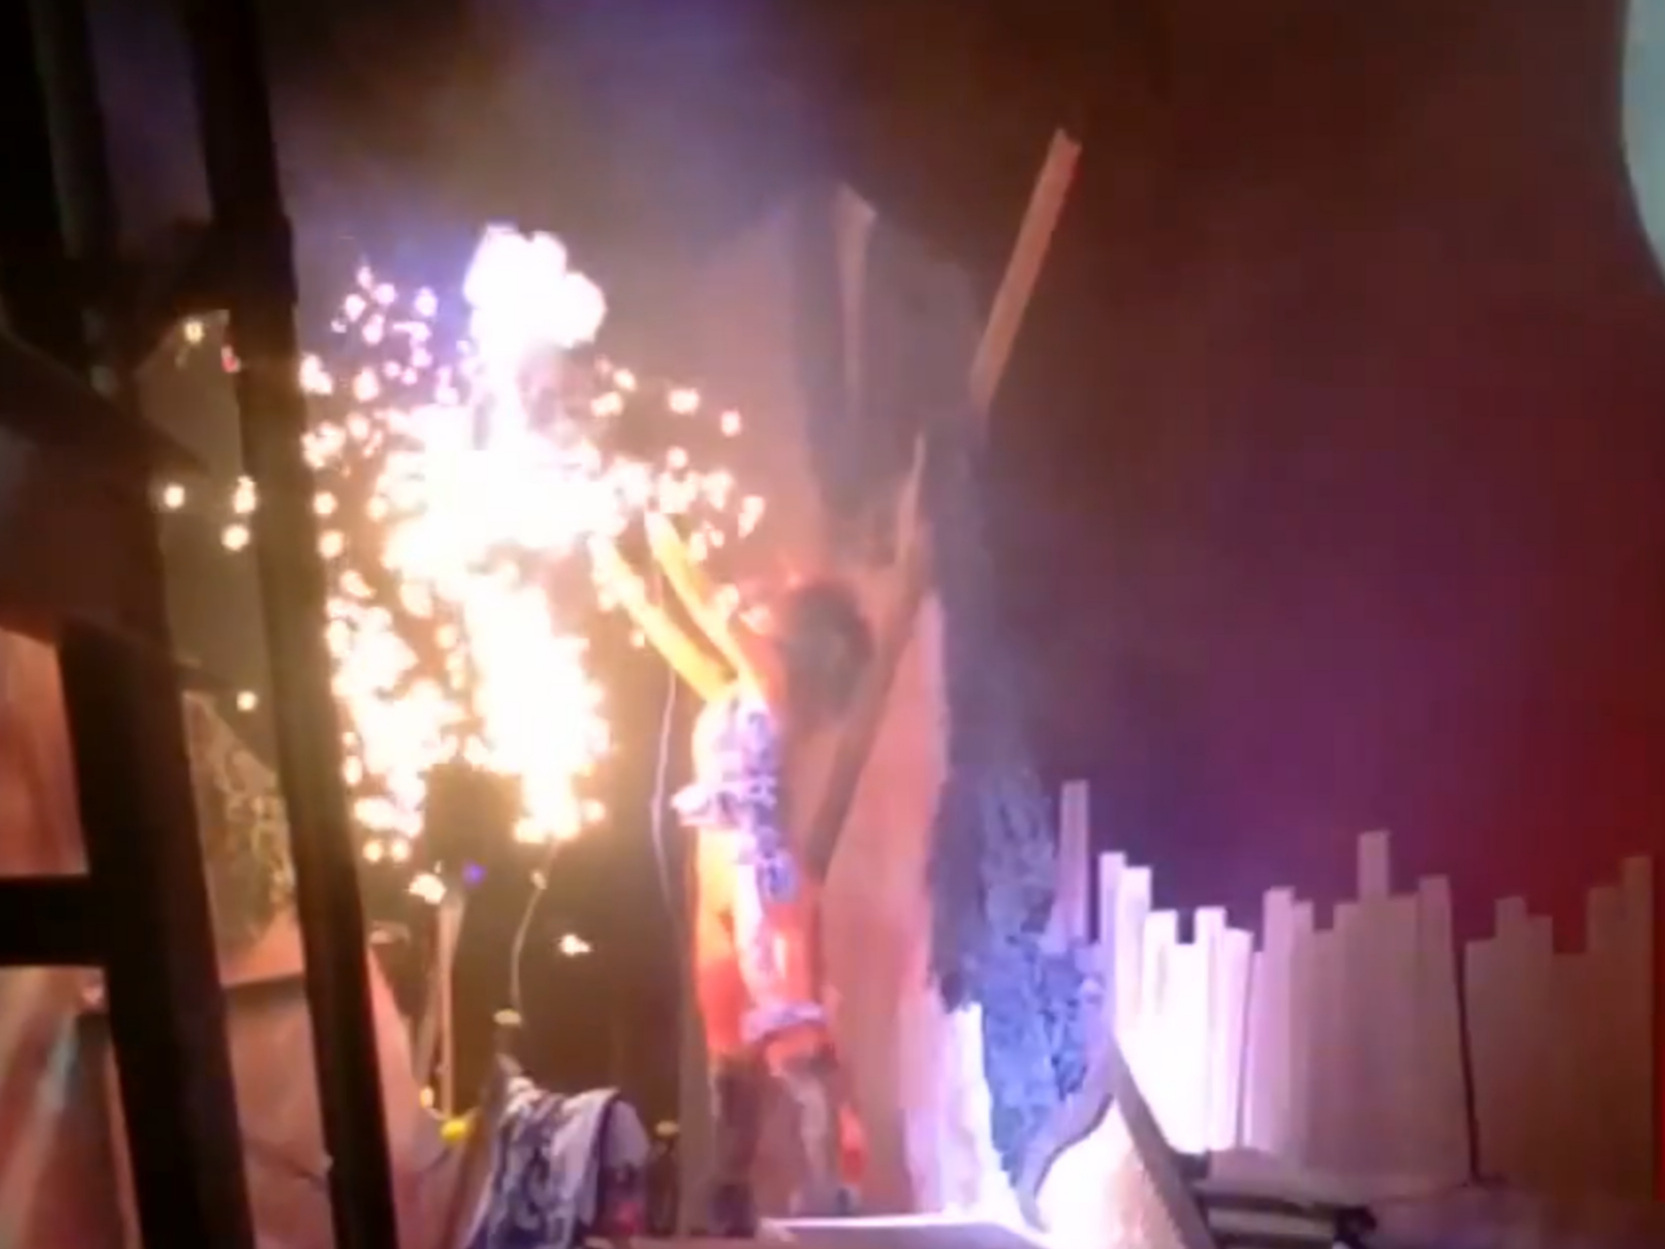 Pyrotechnic effect supplied by Red Green Go for an amateur production of Cats in October 2018